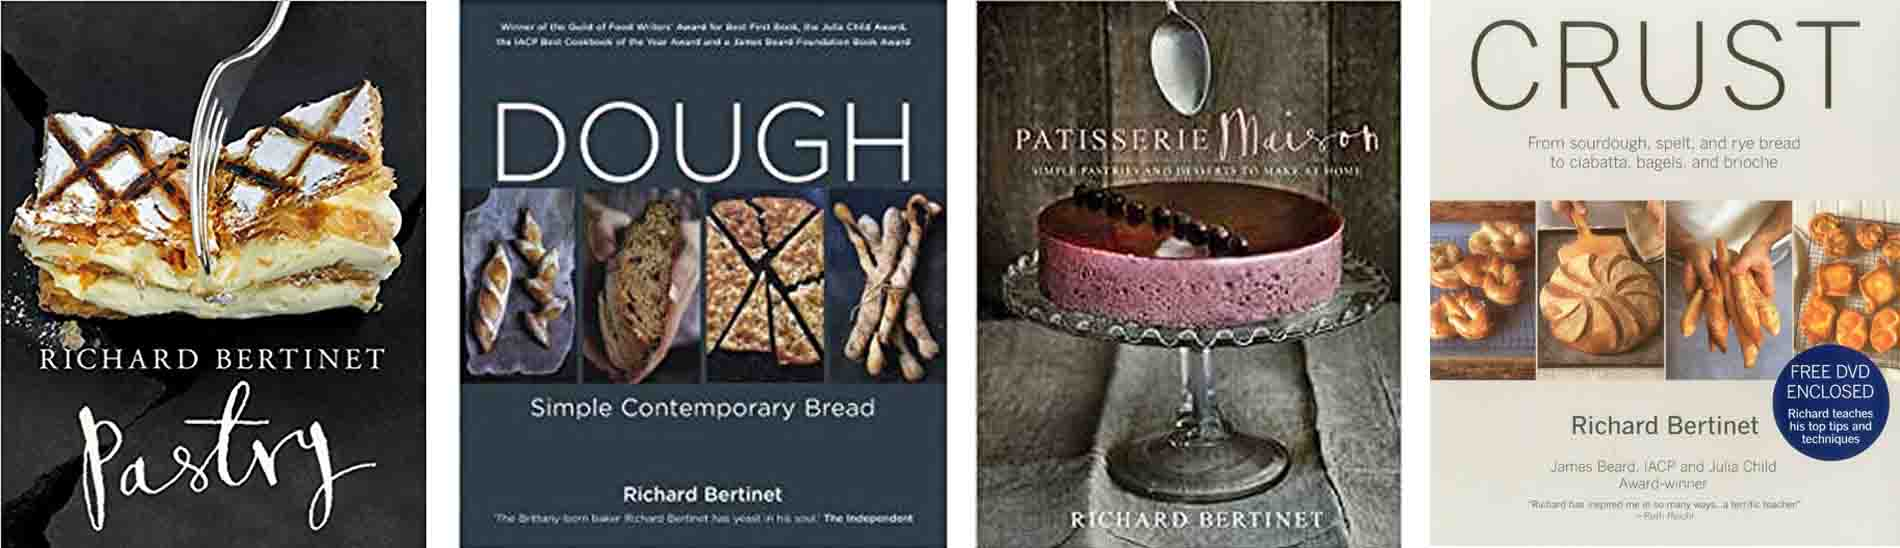 Richard Bertinet Books